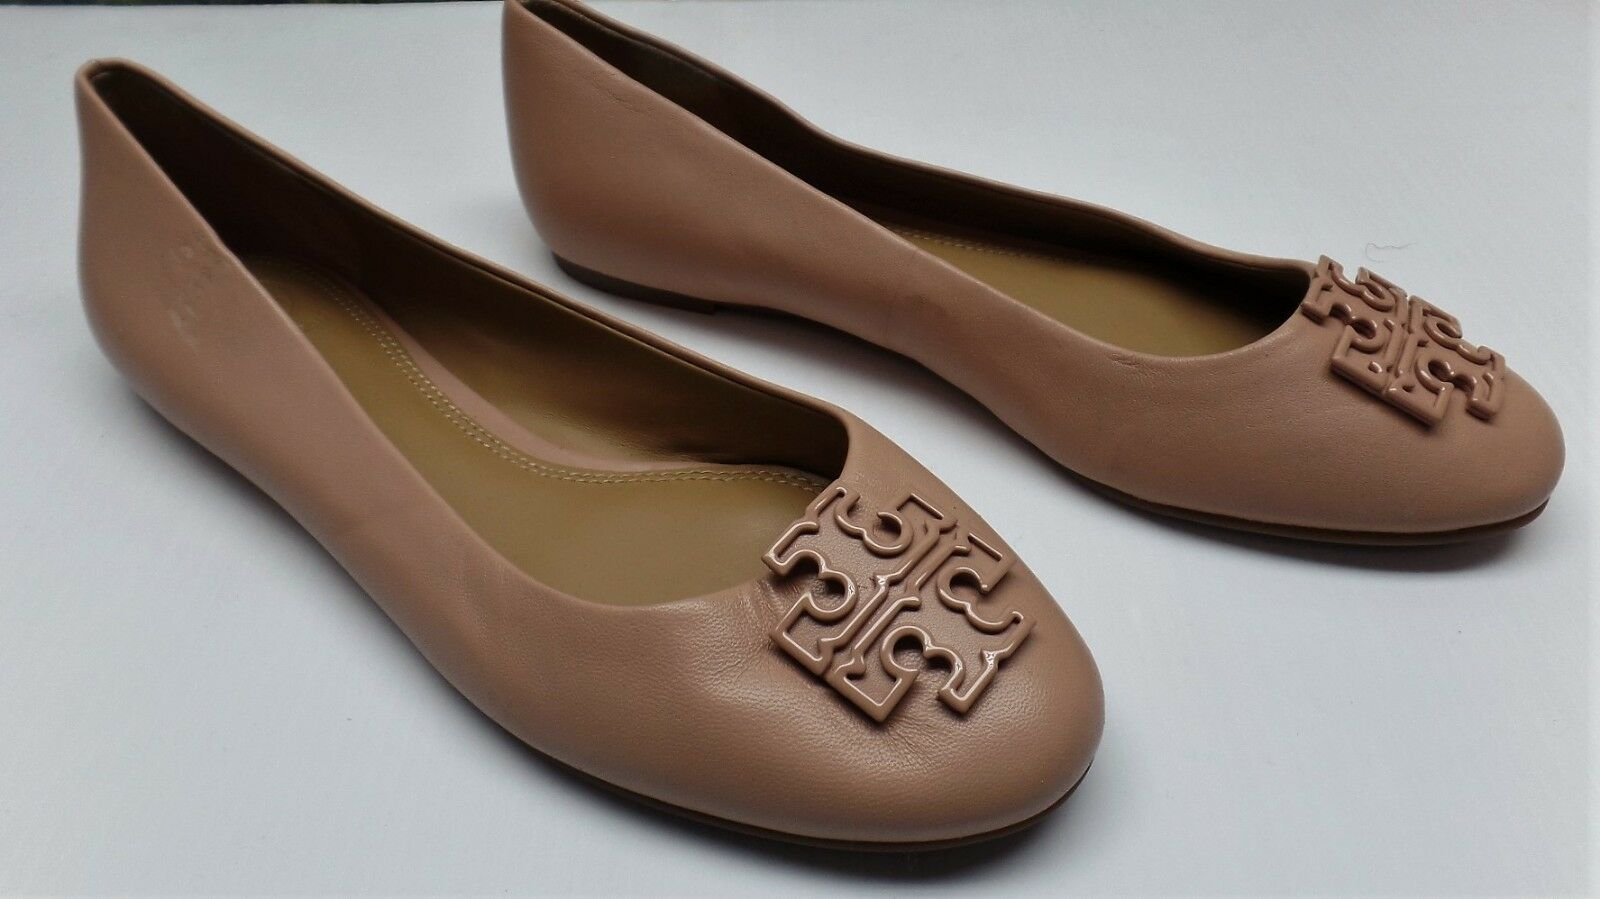 Tory Burch Melinda Coated Flats in Nude - Size 8.5M -  248